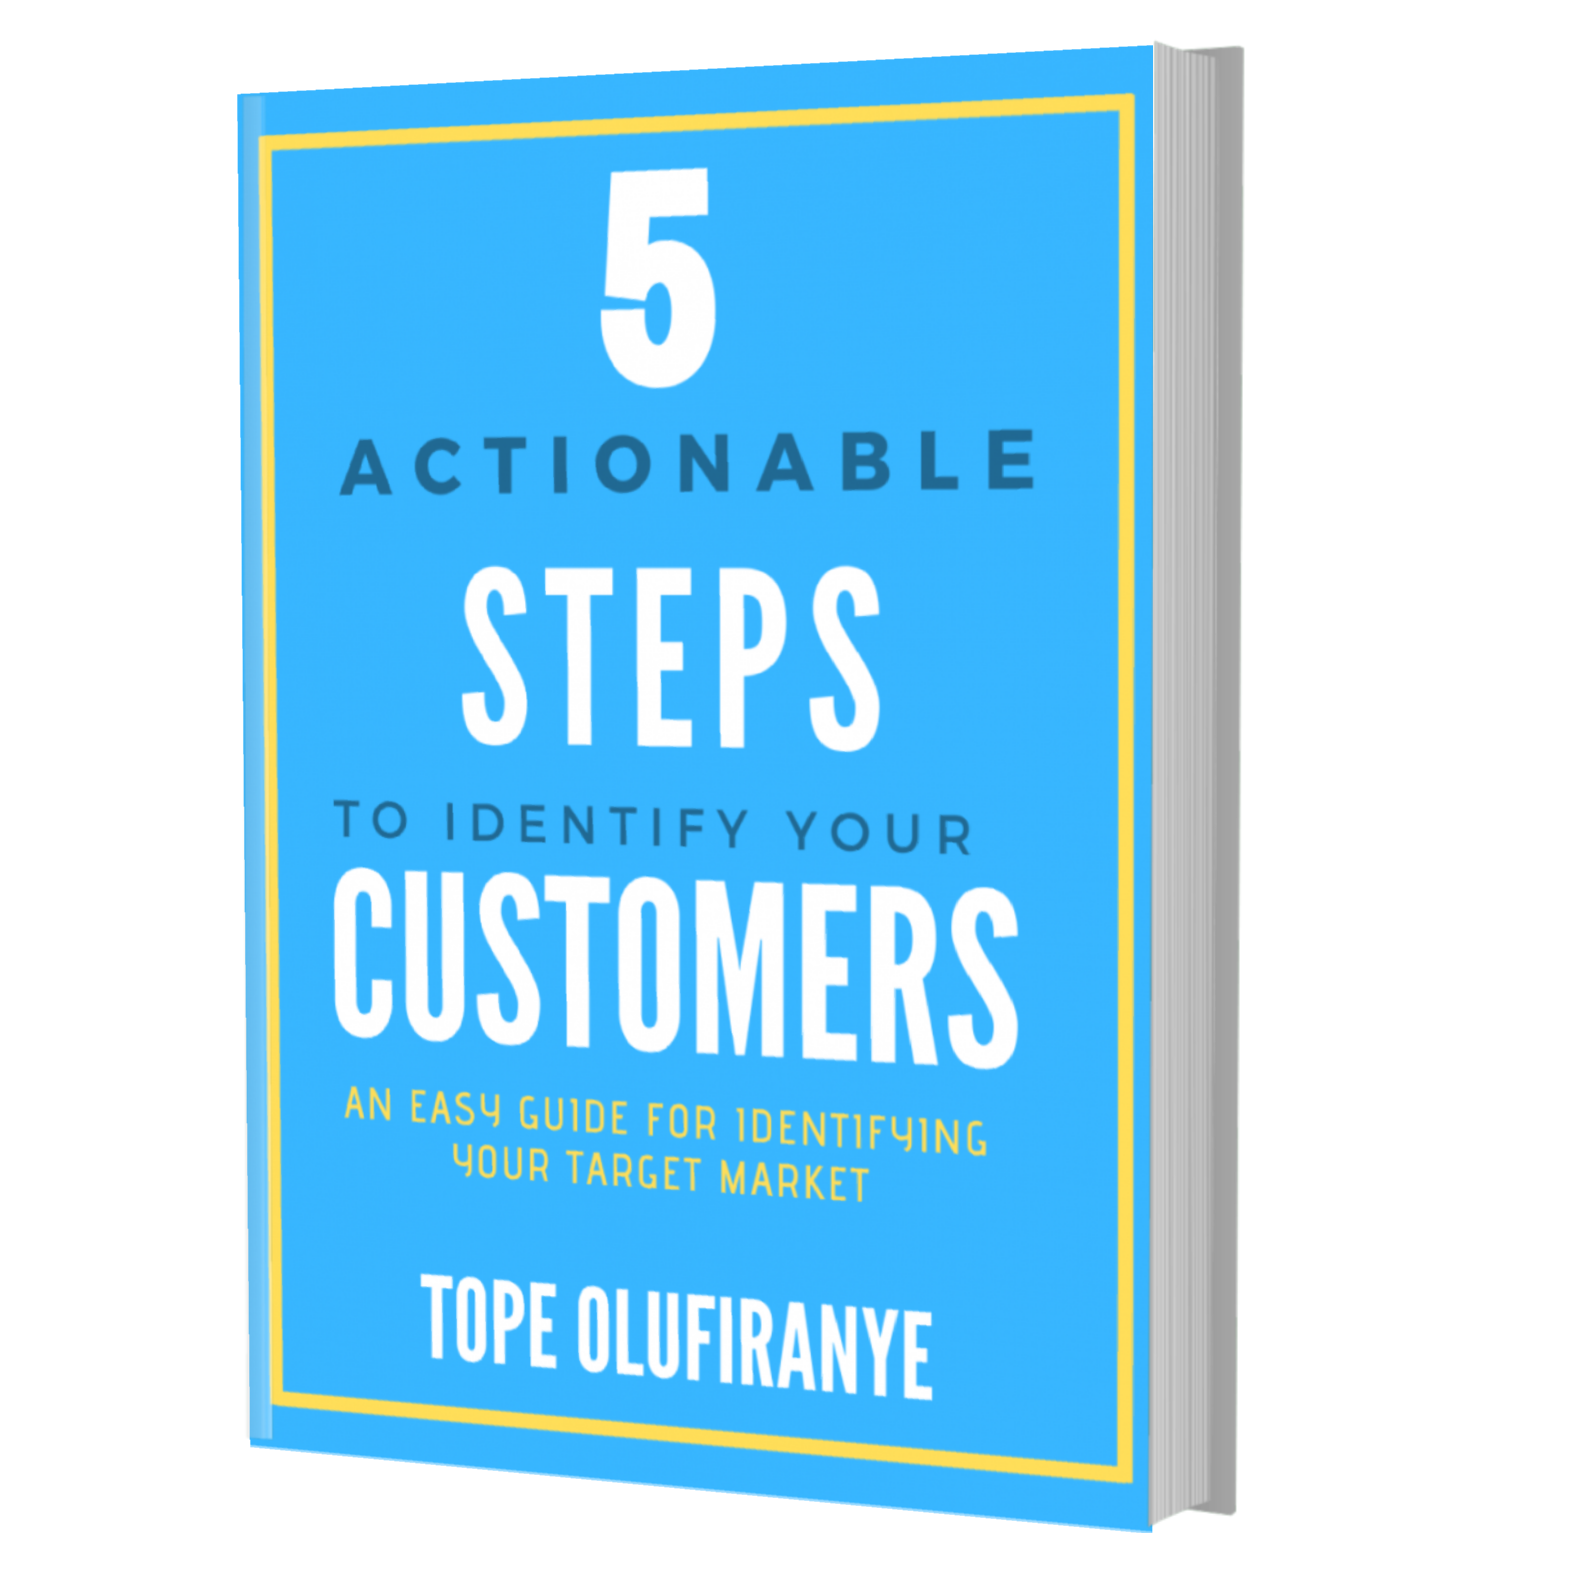 5 Actionable Steps To Identify Your Customers